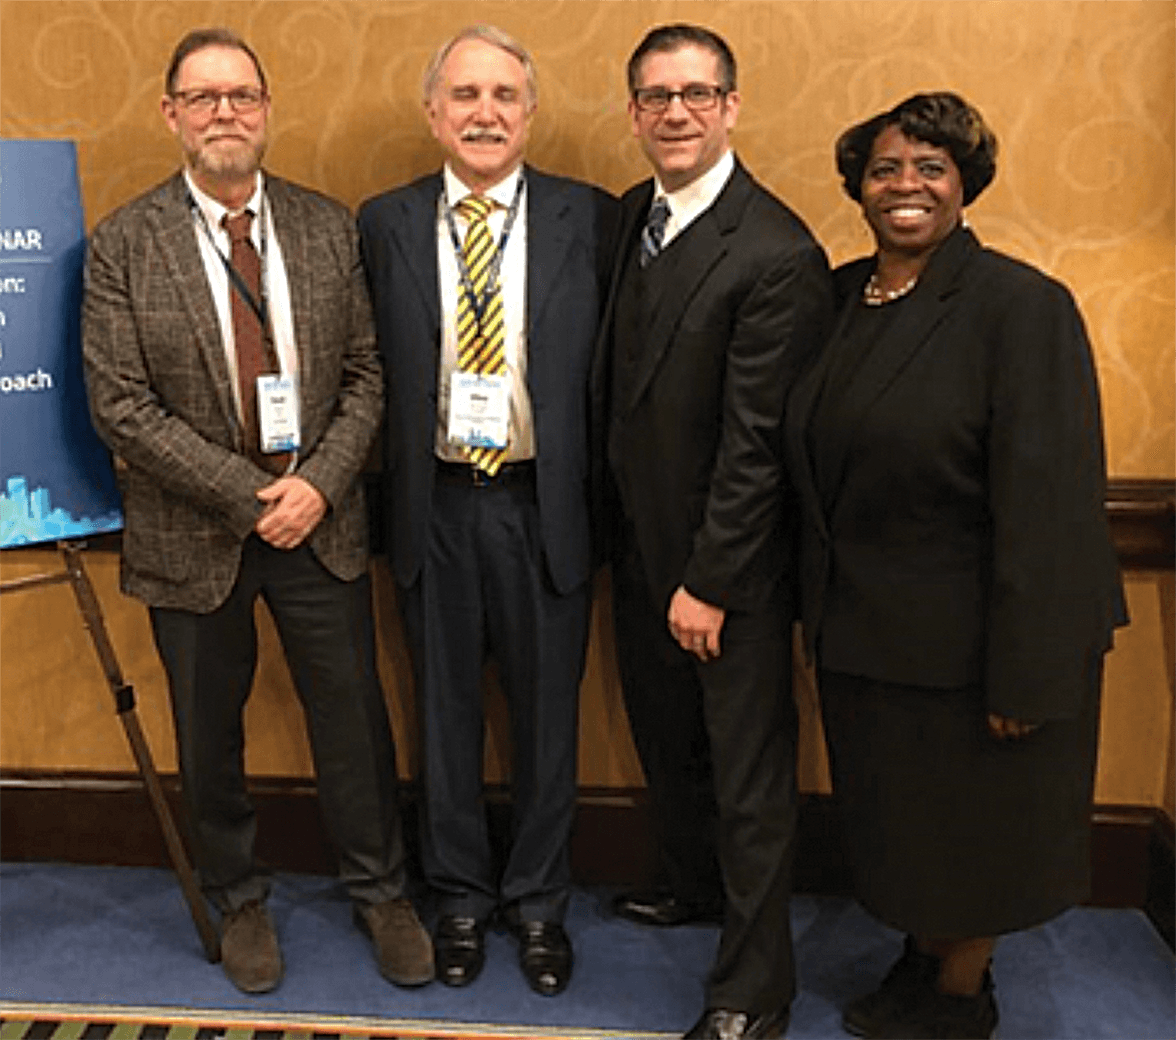 Nyack College's Dr. David Turk, Dr. Michael Scales, and Cynthia Dorsey with Sean Pica in Dallas